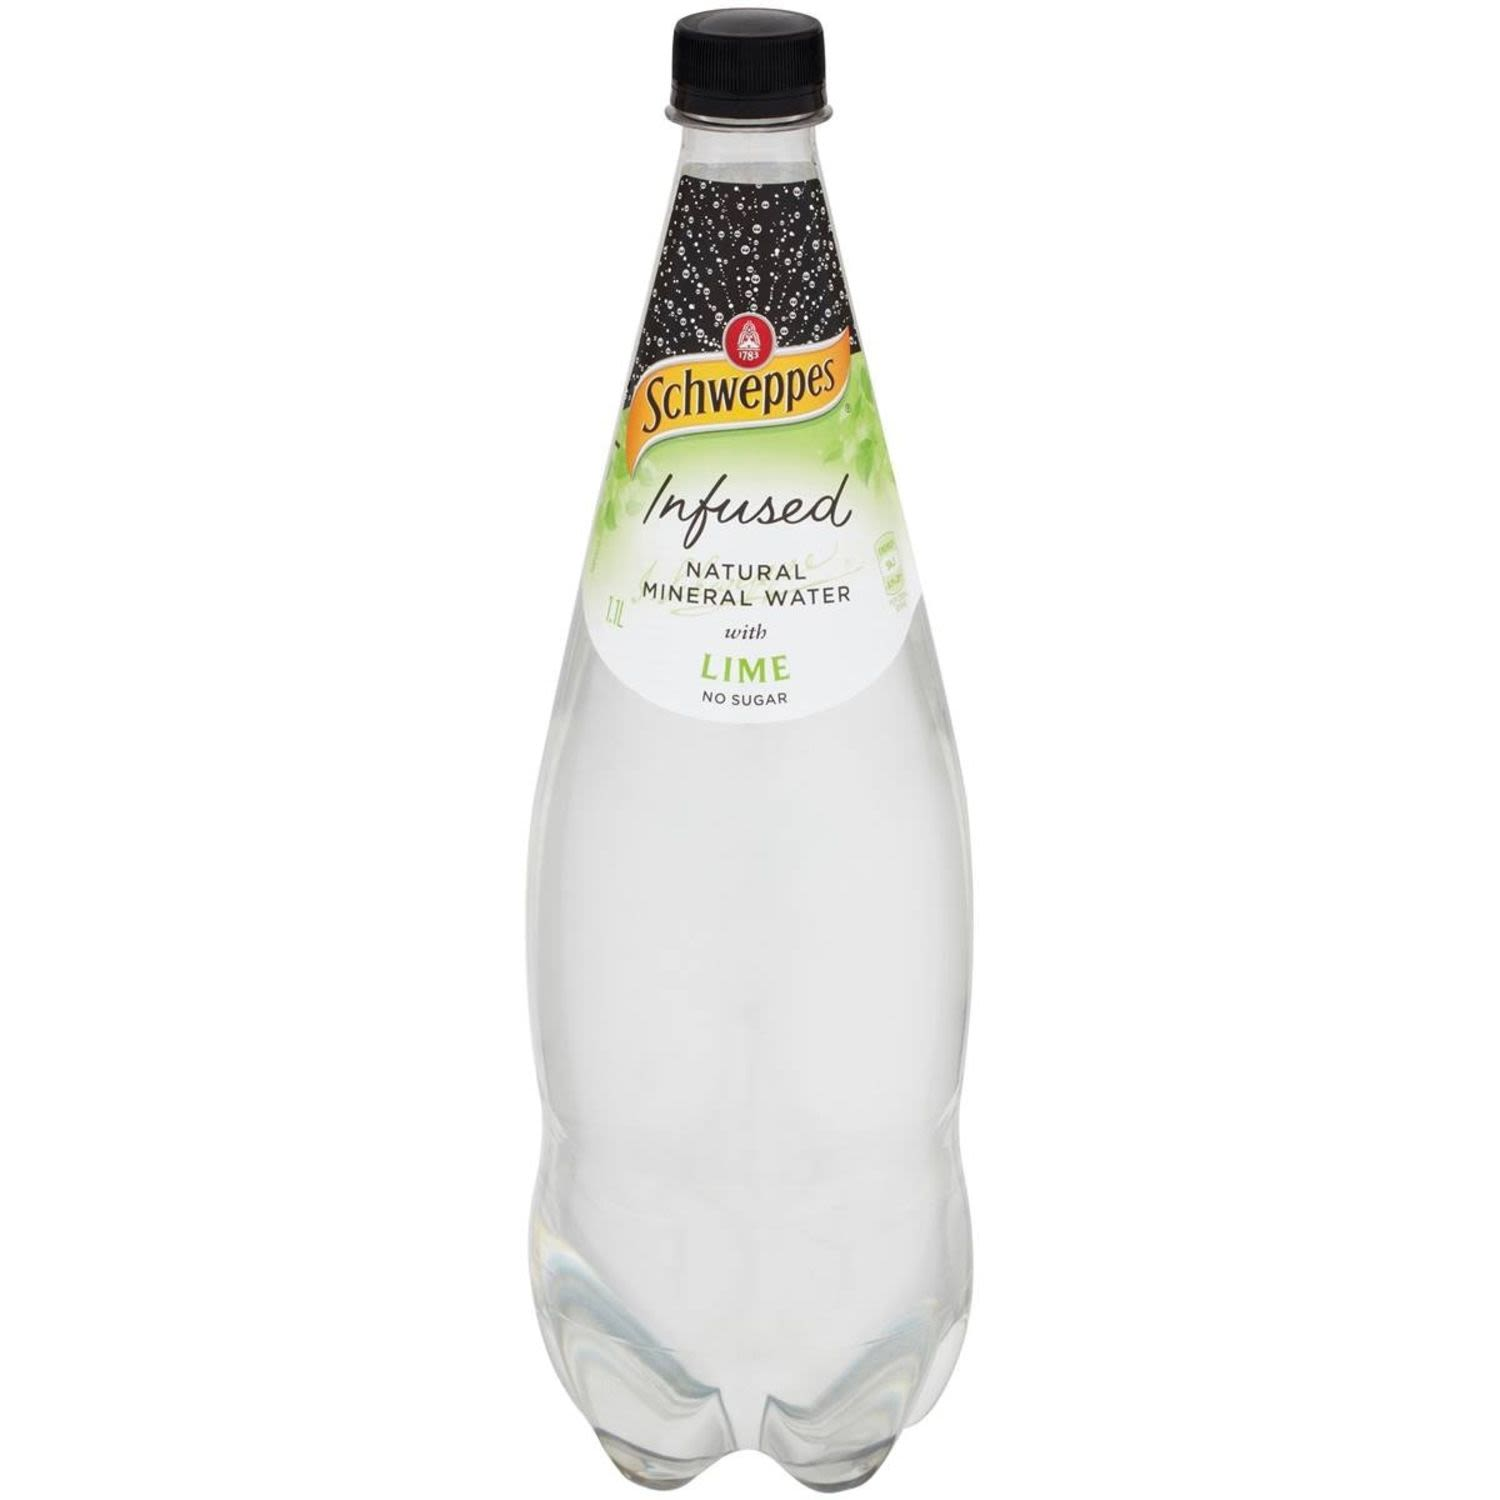 Schweppes Infused Natural Mineral Water With Lime, 1.1 Litre